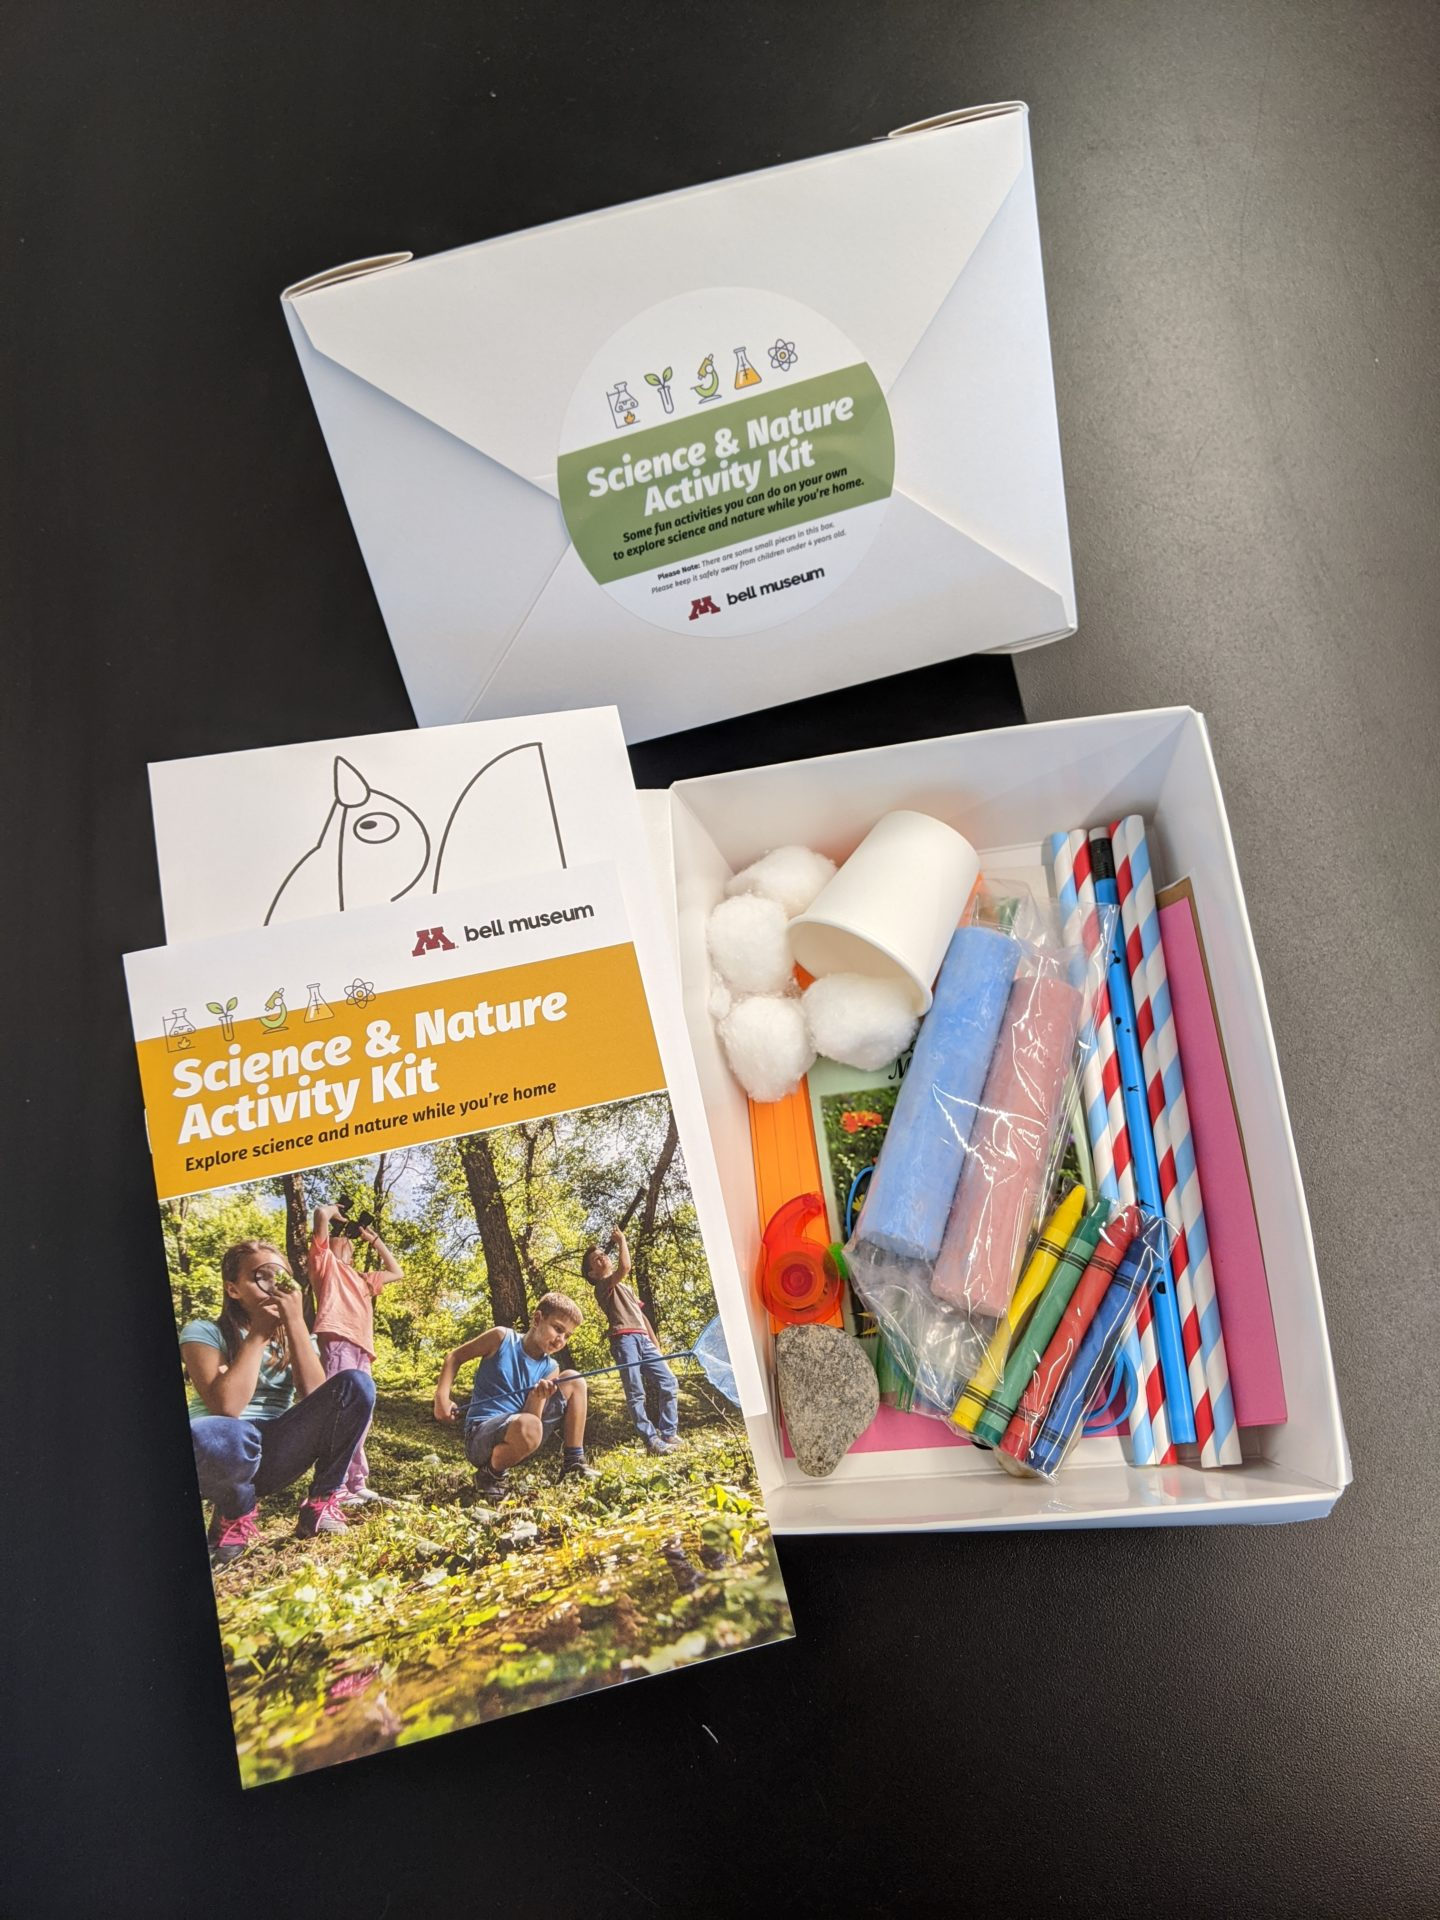 activity kits with guides and science and art contents such as chalk, pencils, cotton balls